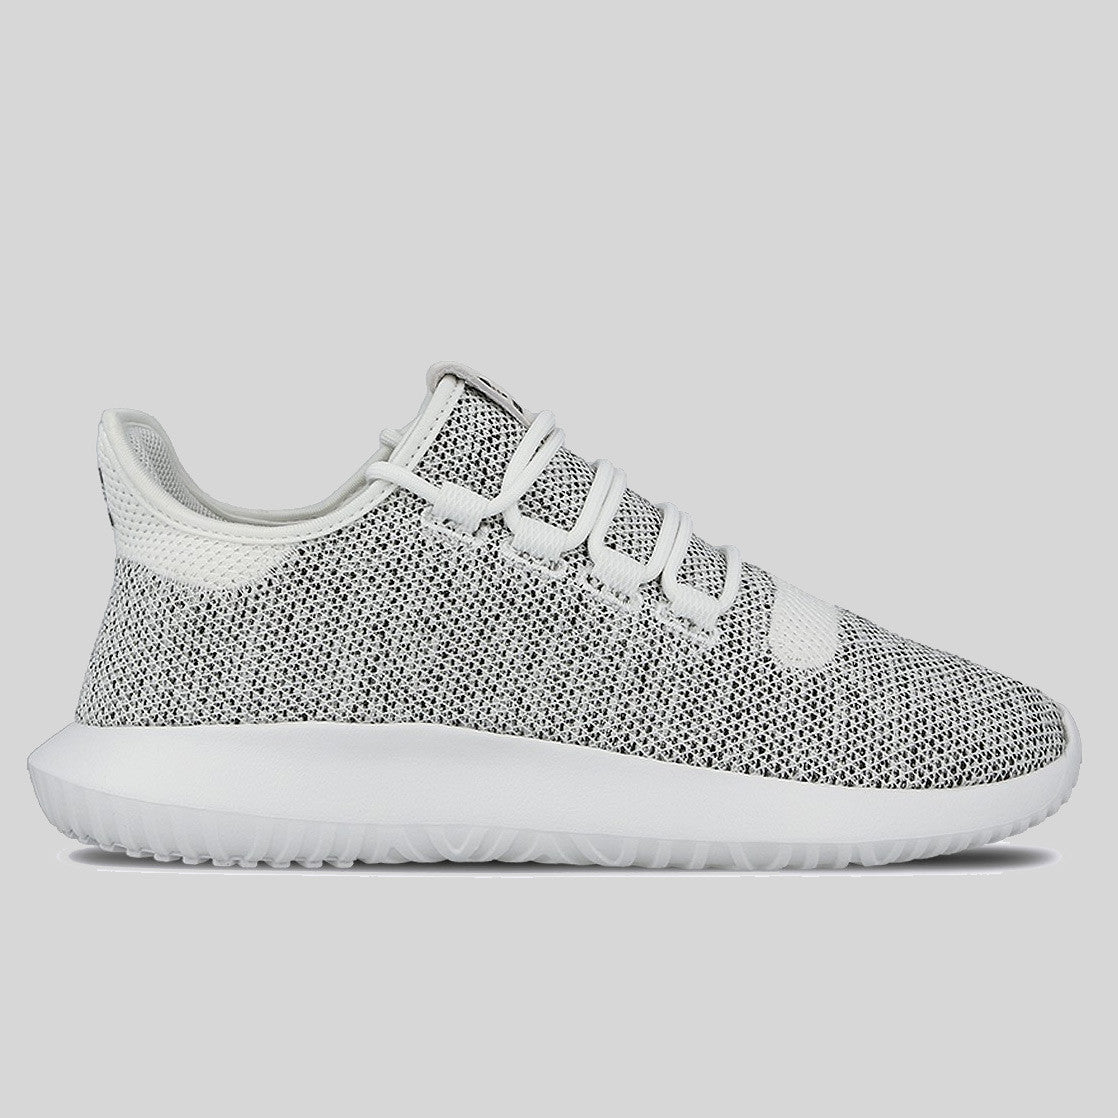 The adidas Tubular Shadow Gets Covered In Duck Camo Kicks On Fire